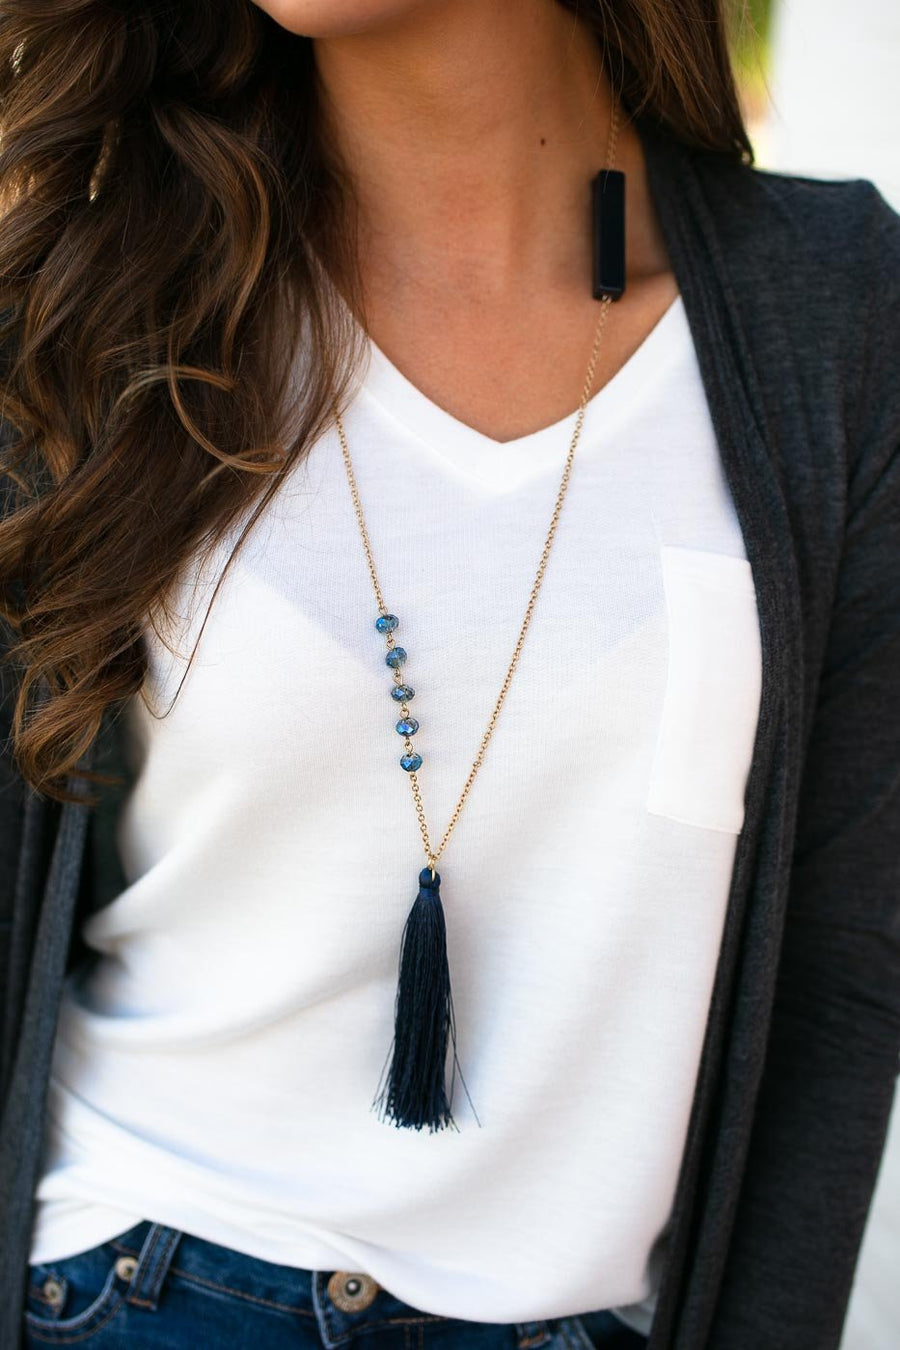 Accessories Wanted Navy Tassel Long Necklace - Lotus Boutique